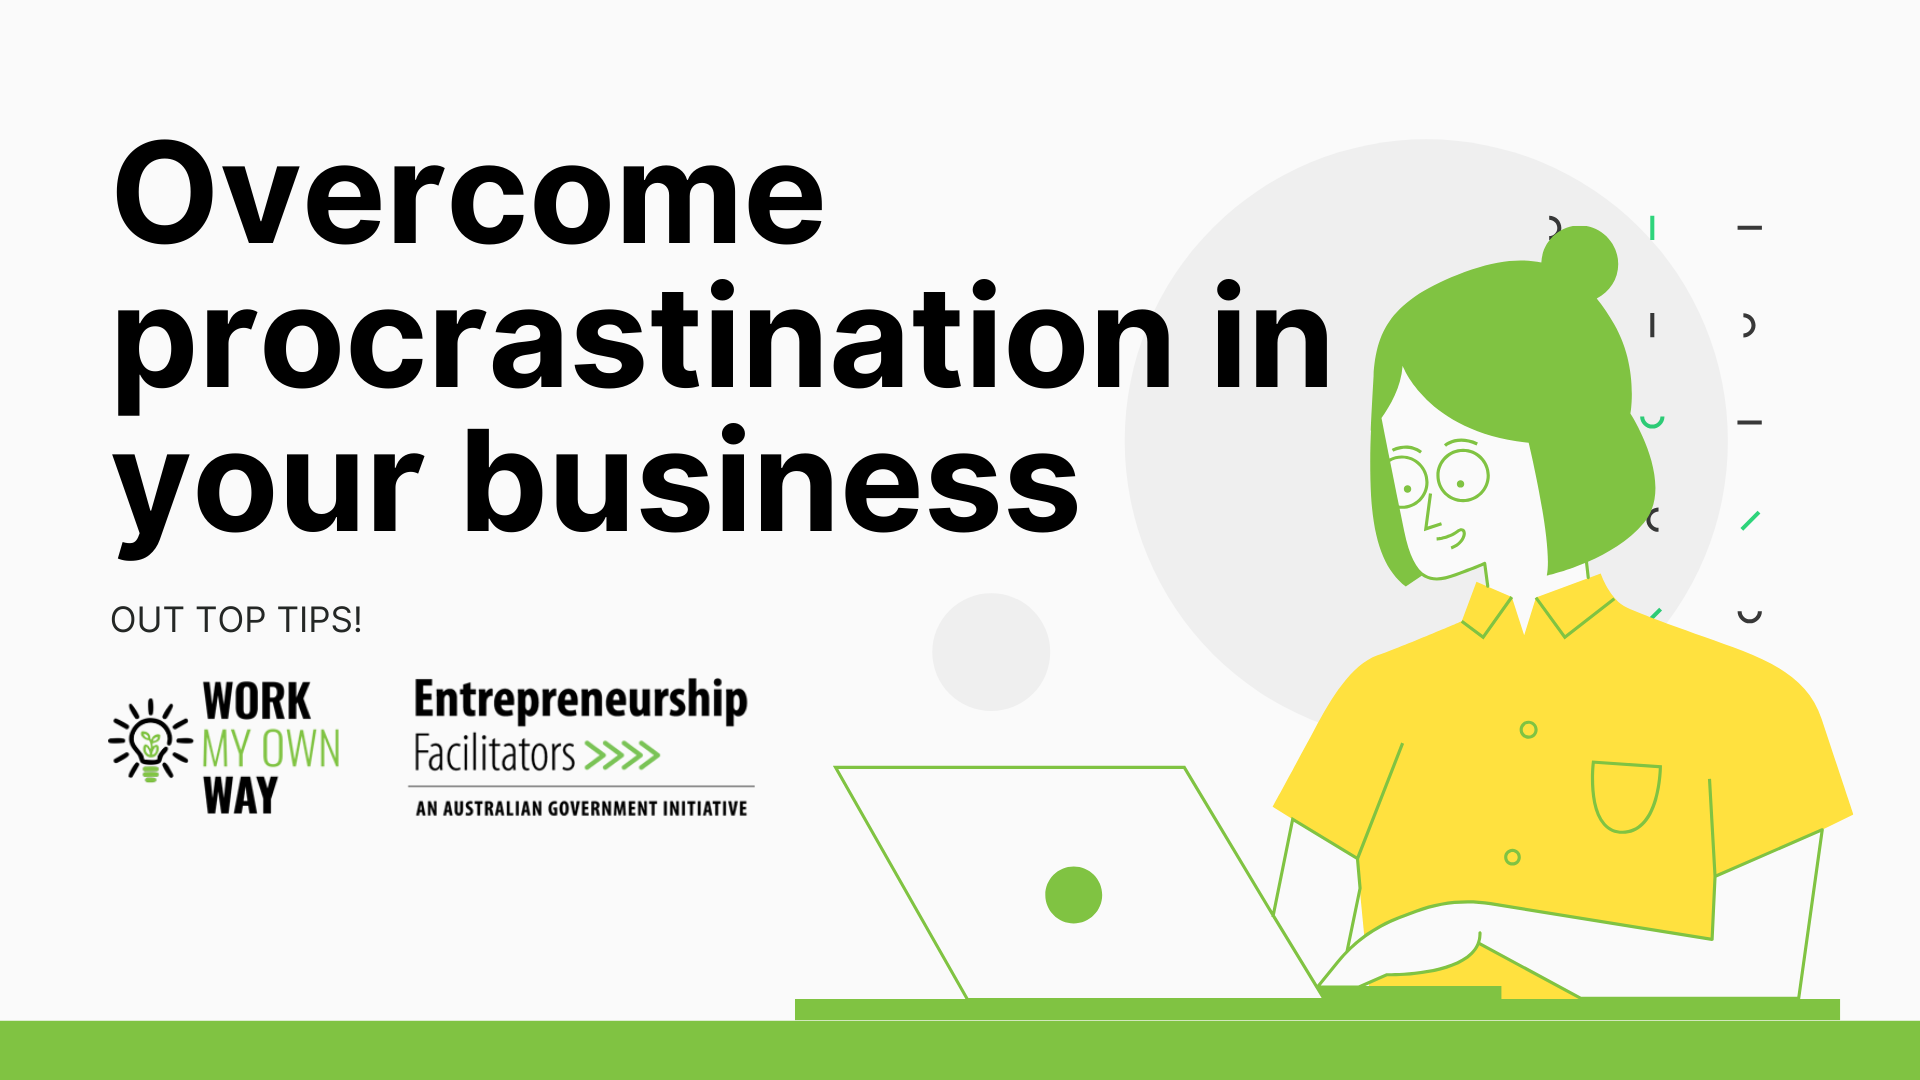 Overcome procrastination in your business